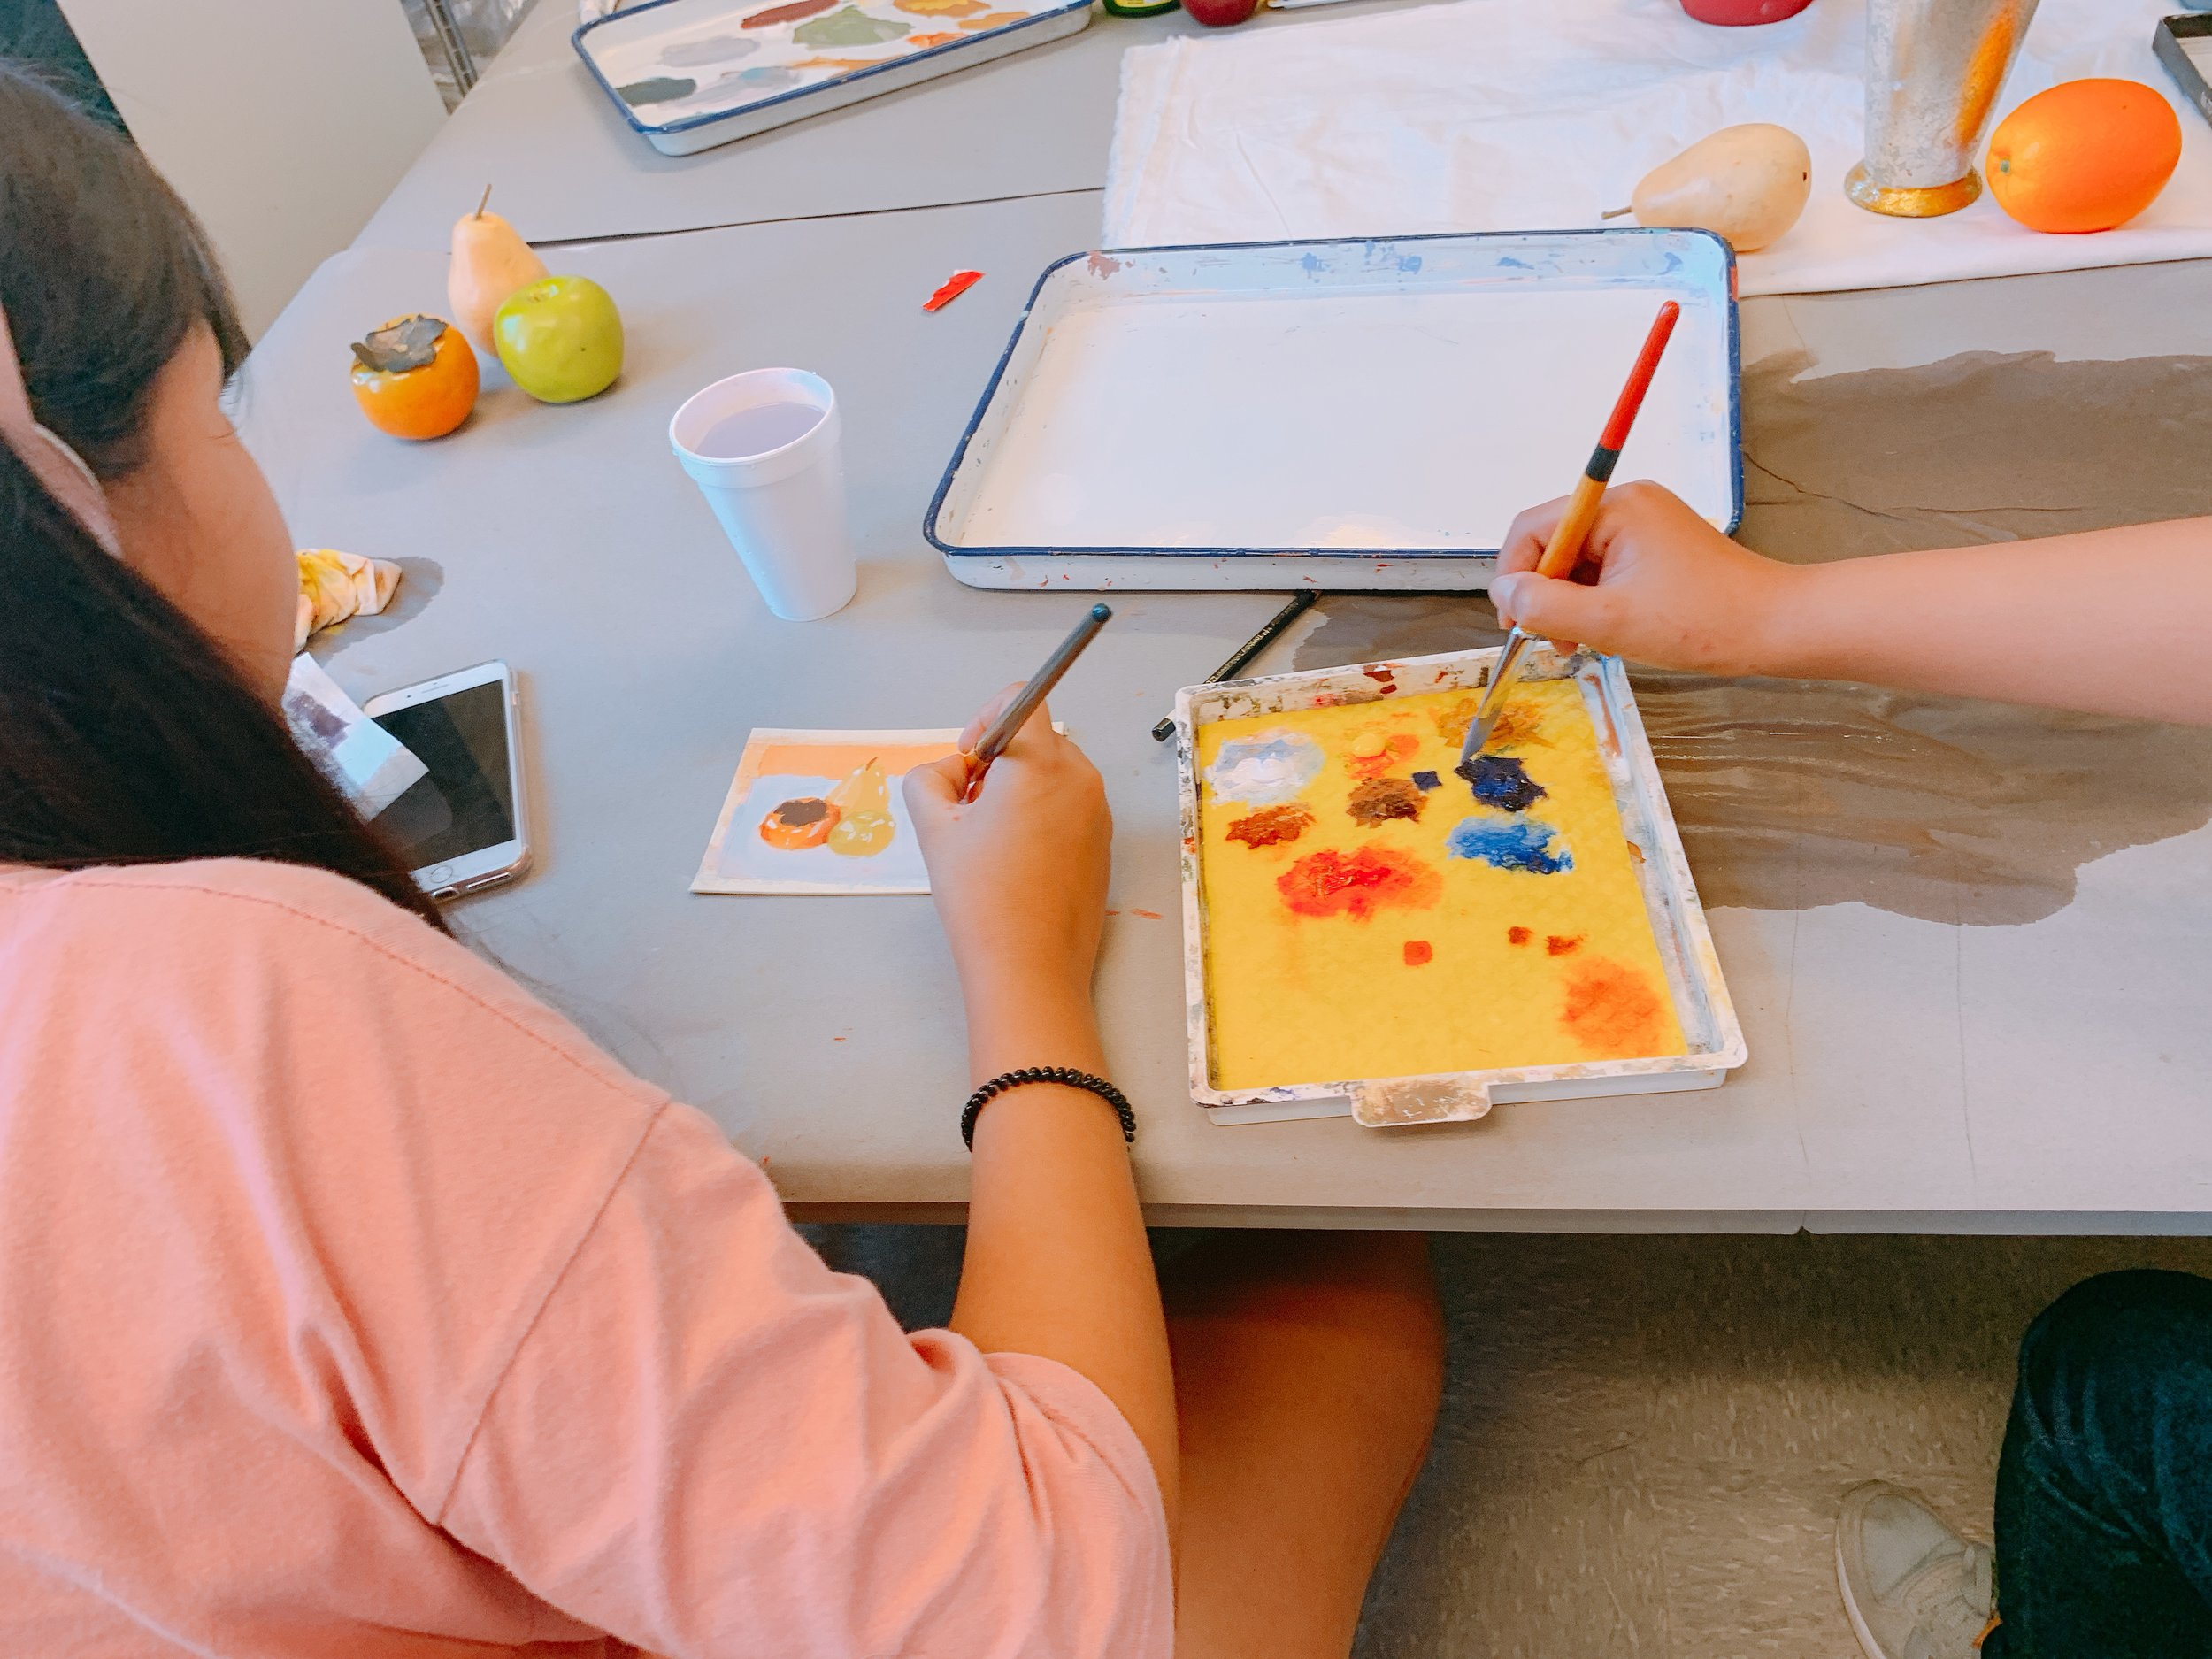 PAINTING CLASS - This class will be focusing on value, color, and lighting. Students will learn how to observe and capture accurate color relationships, how to breakdown and understand various lighting, basic shapes, simplicity, and how to enhance color. (The class will be using traditional medium)